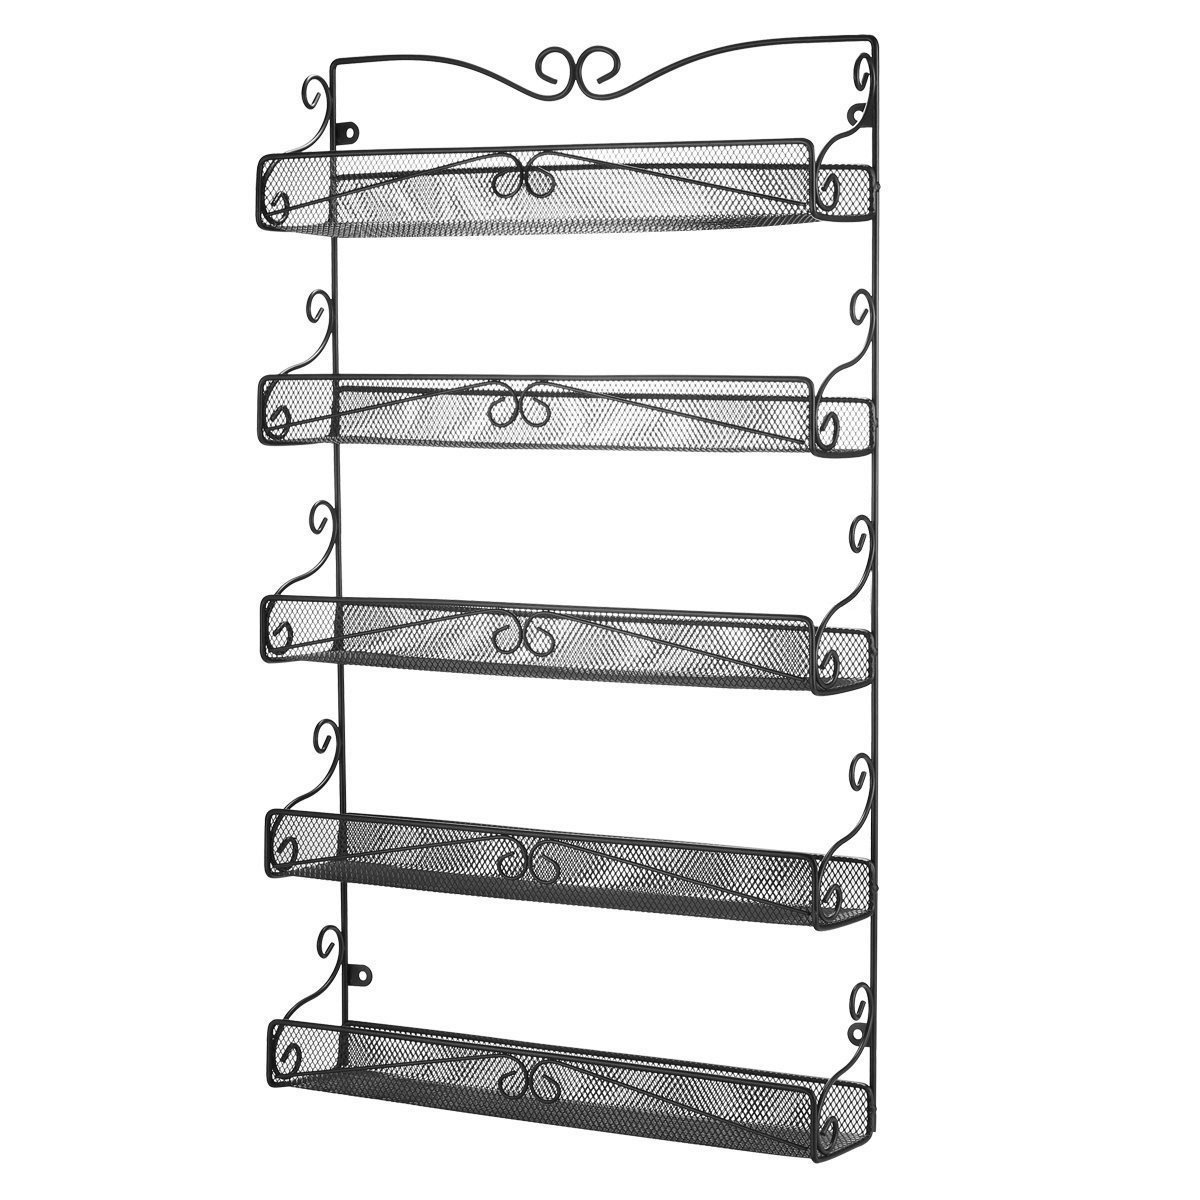 3S Wall Mounted Spice Rack Storage Hanging Spice Shelf Organizer,5 Tier Black. COMINHKPR135968